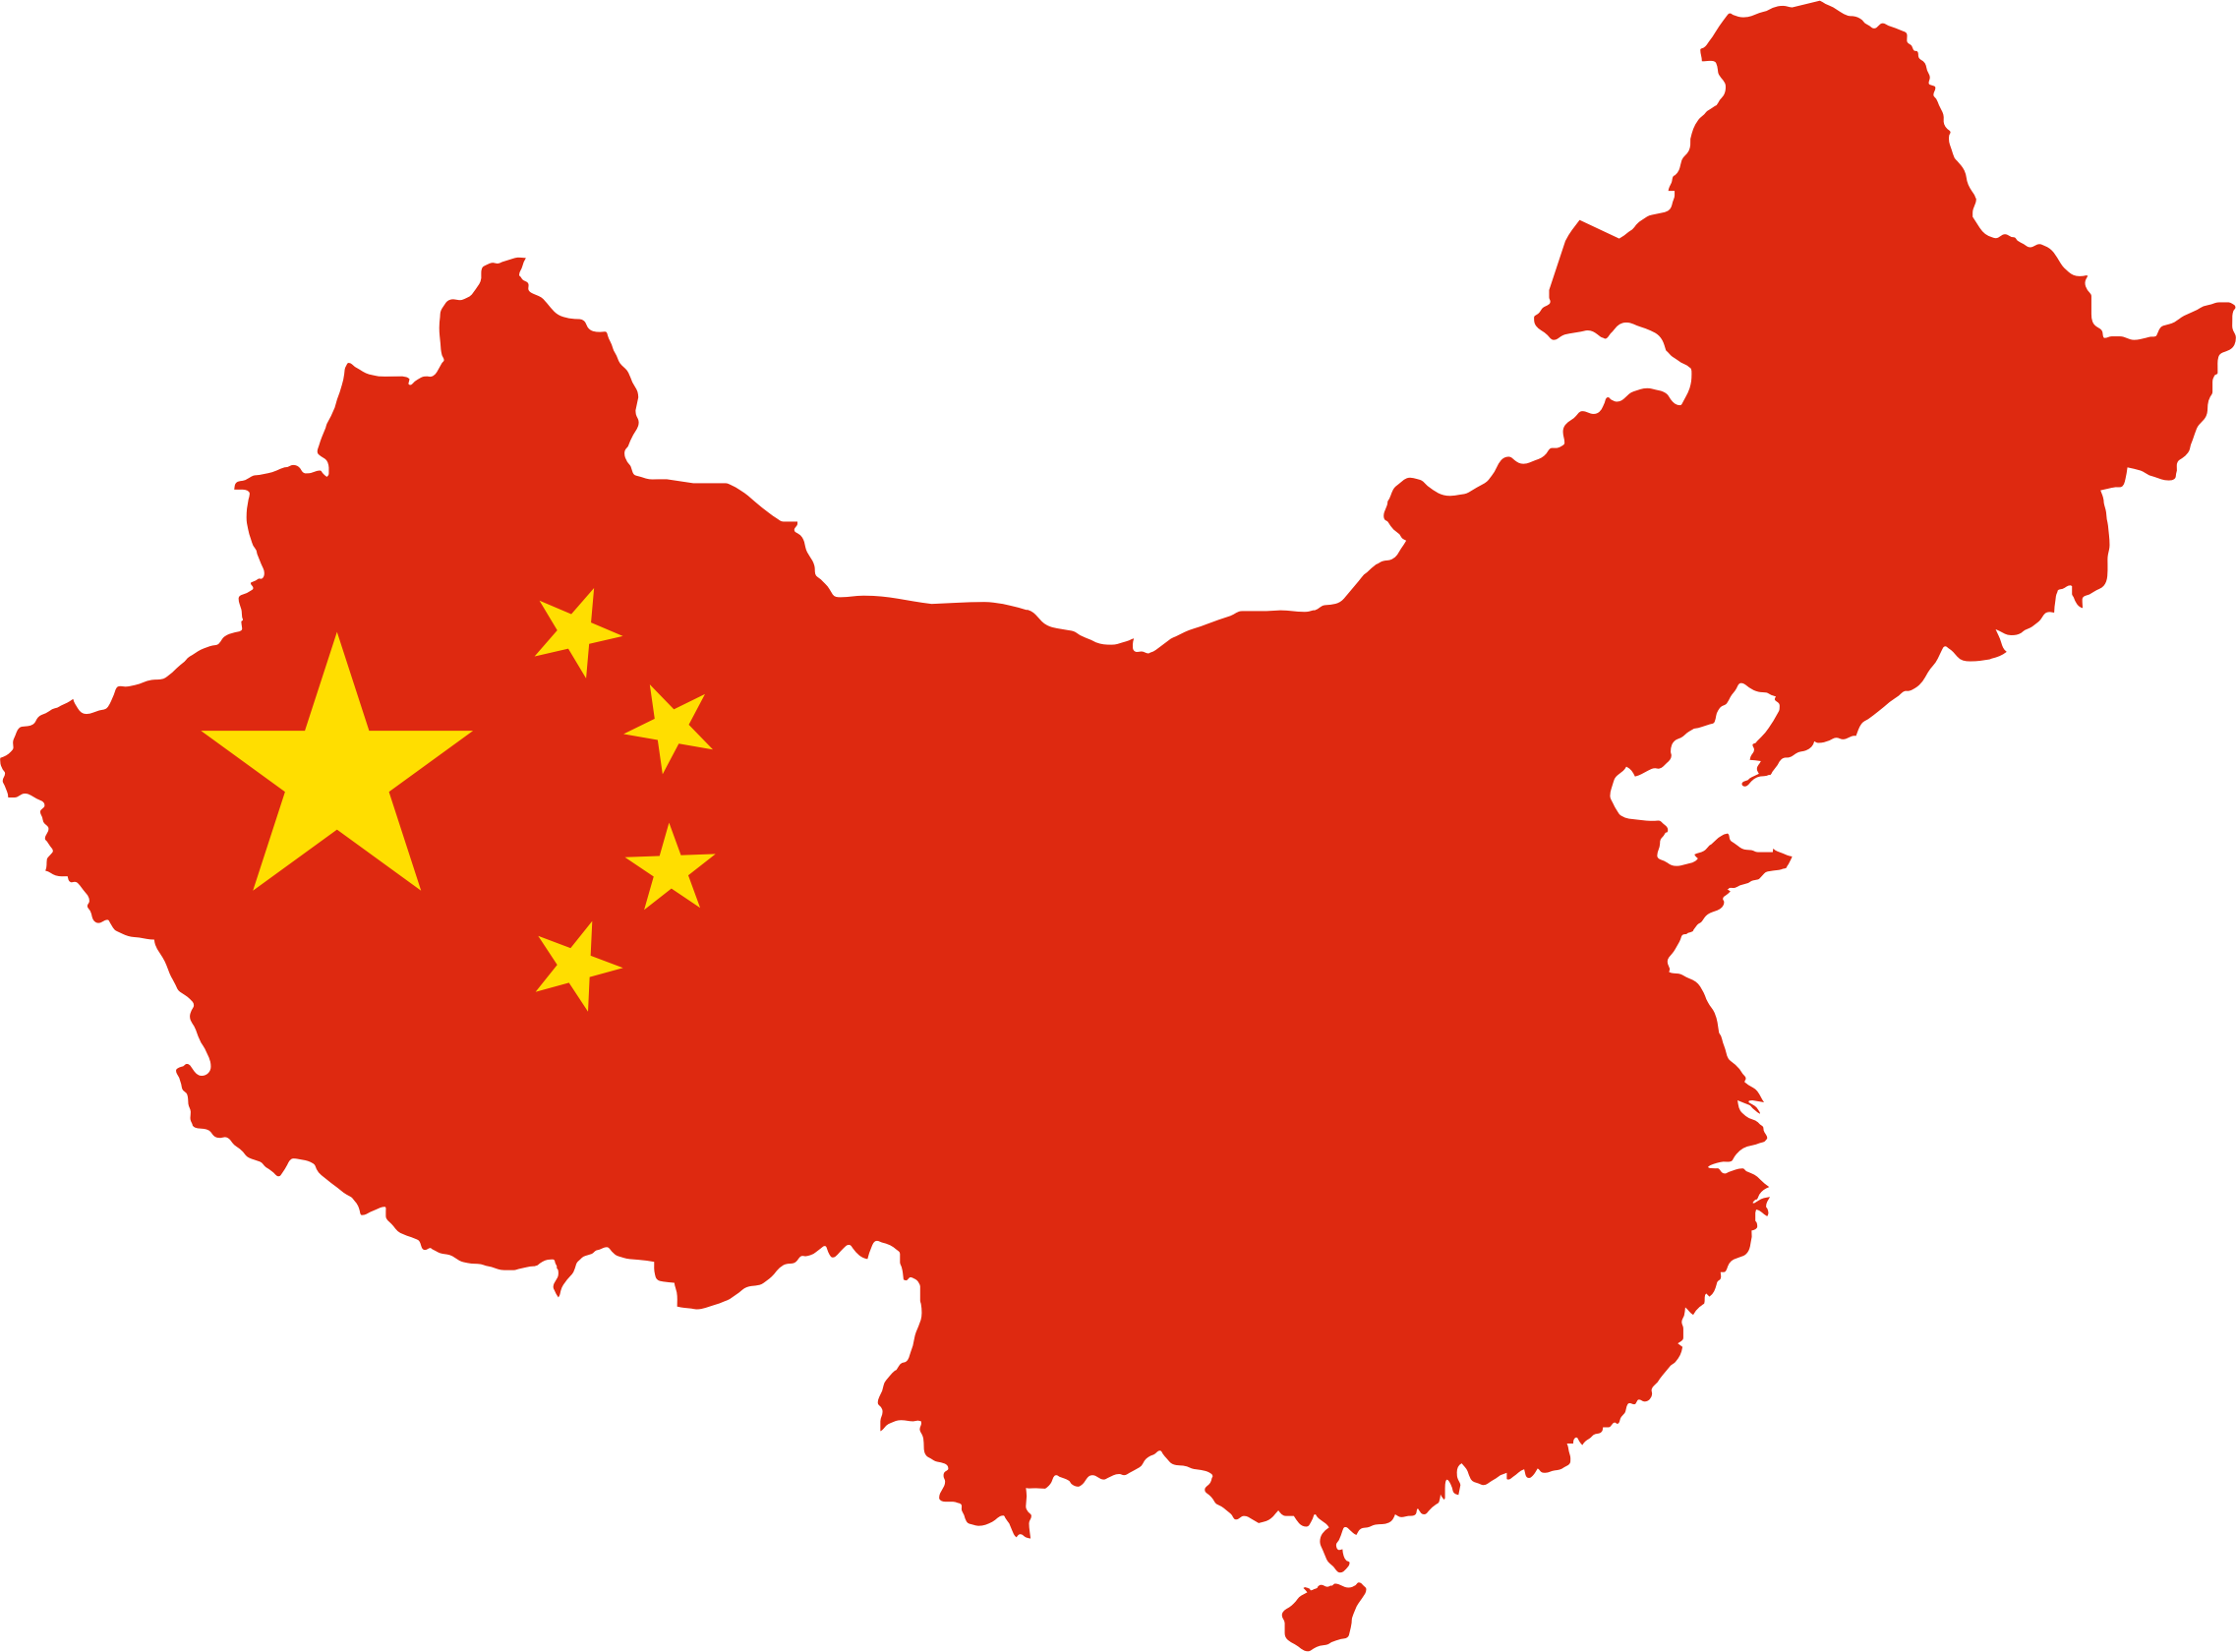 Clipart China Map Flag - China map